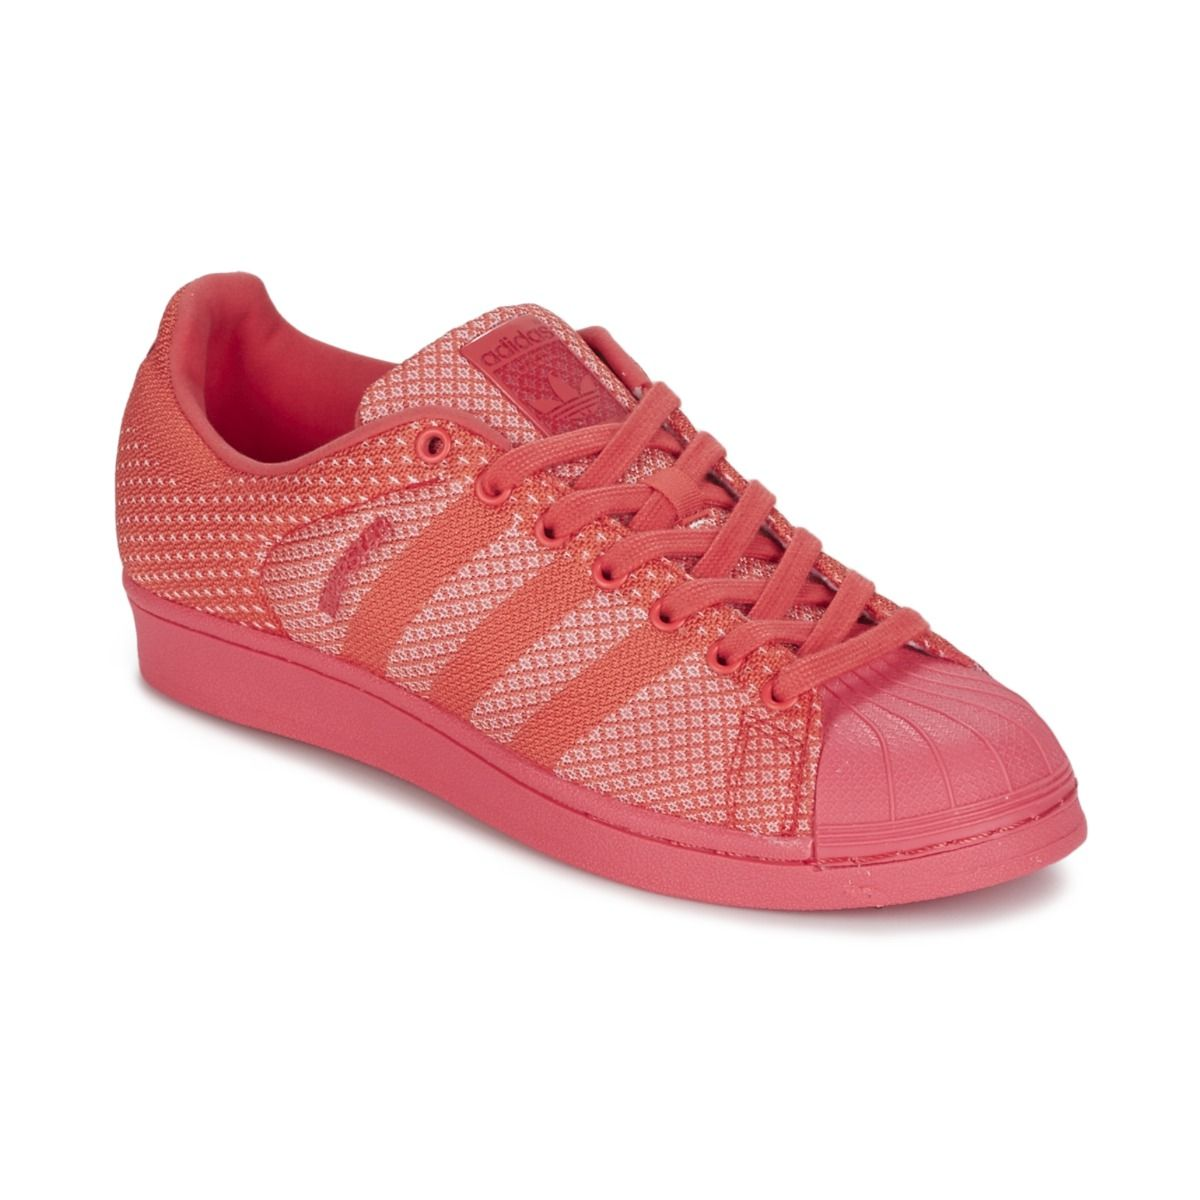 b85cec445ea Baskets basses Adidas Originals SUPERSTAR WEAVE Corail prix promo Baskets Femme  Spartoo 94.99 €